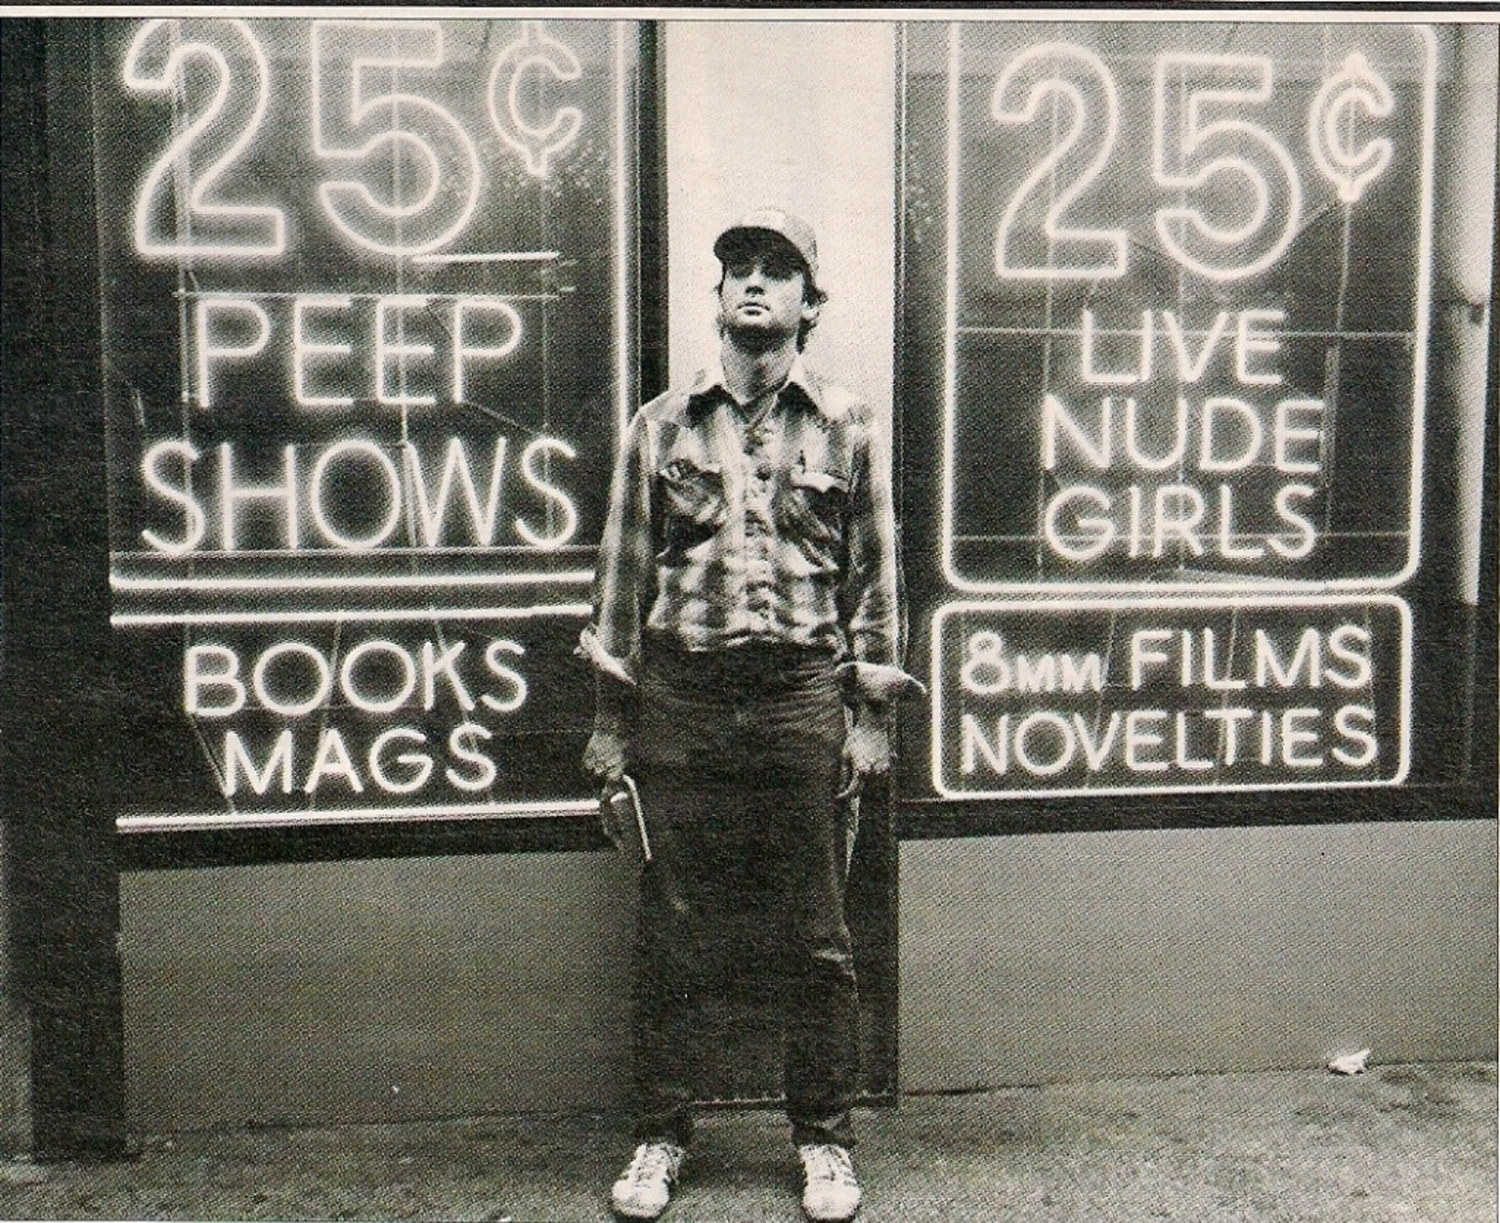 Bill Murray in Times Square, 1980